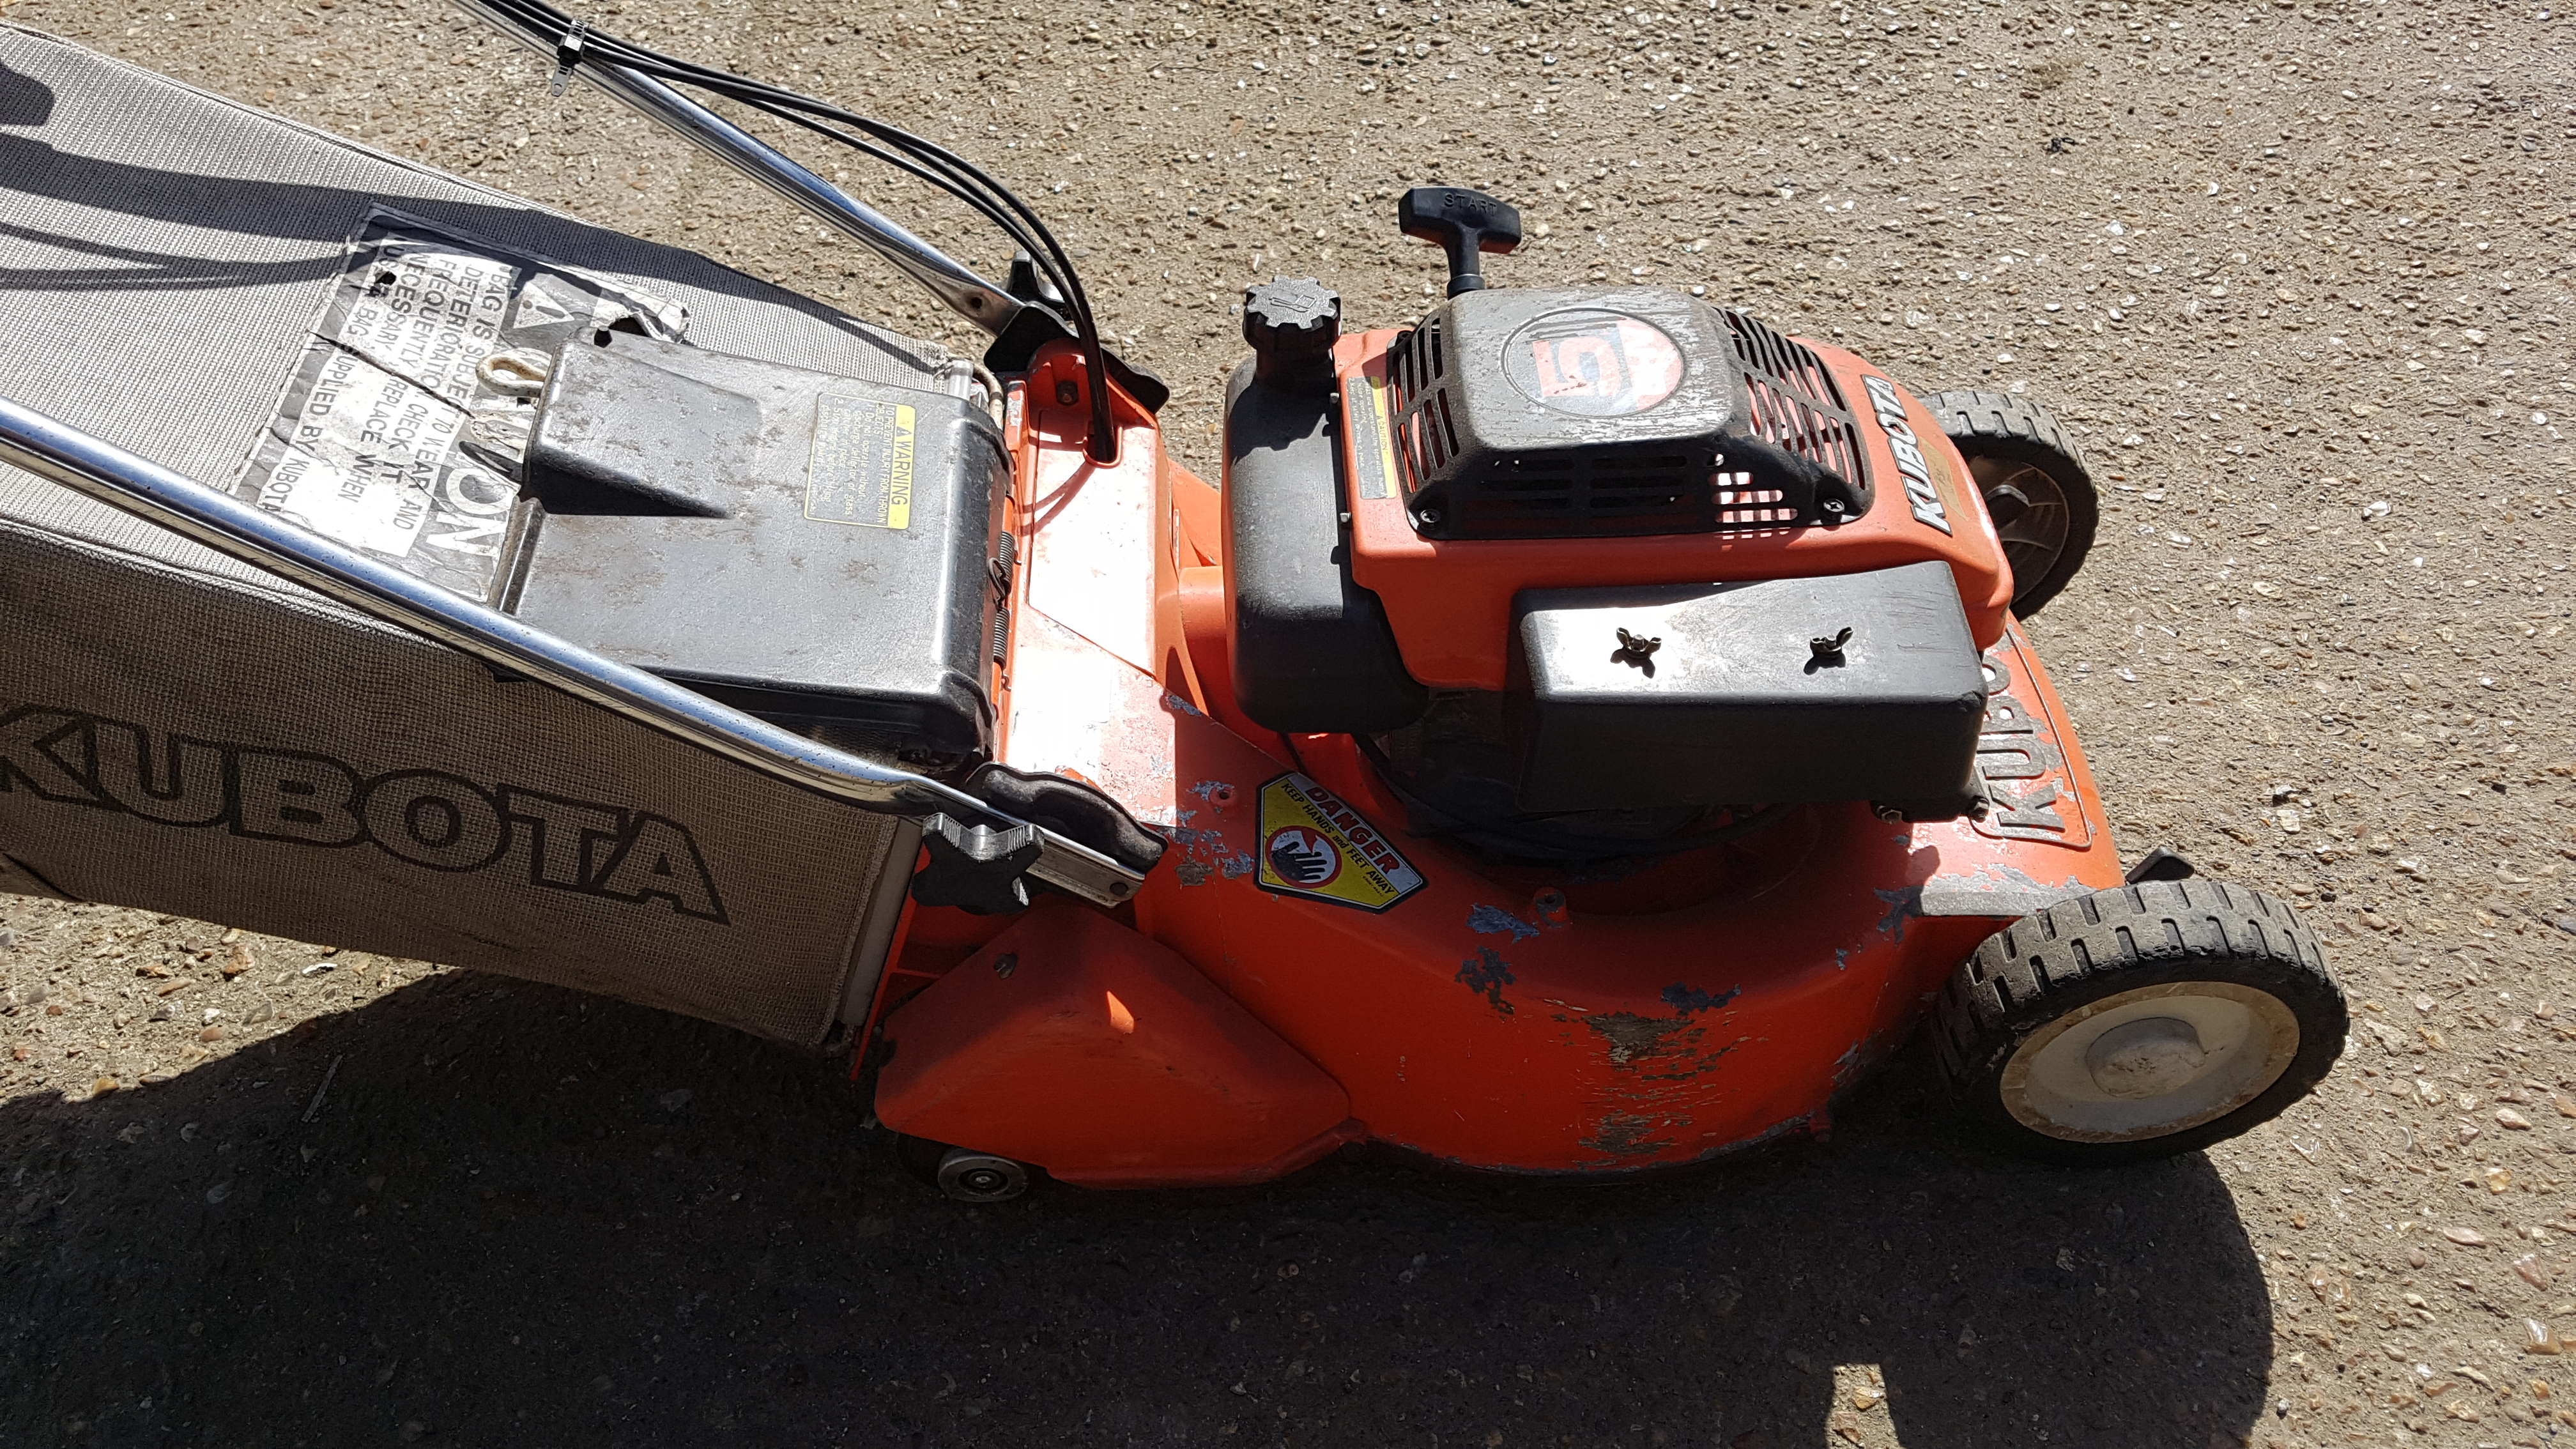 kubota-w5019-self-propelled-mower-with-rear-roller